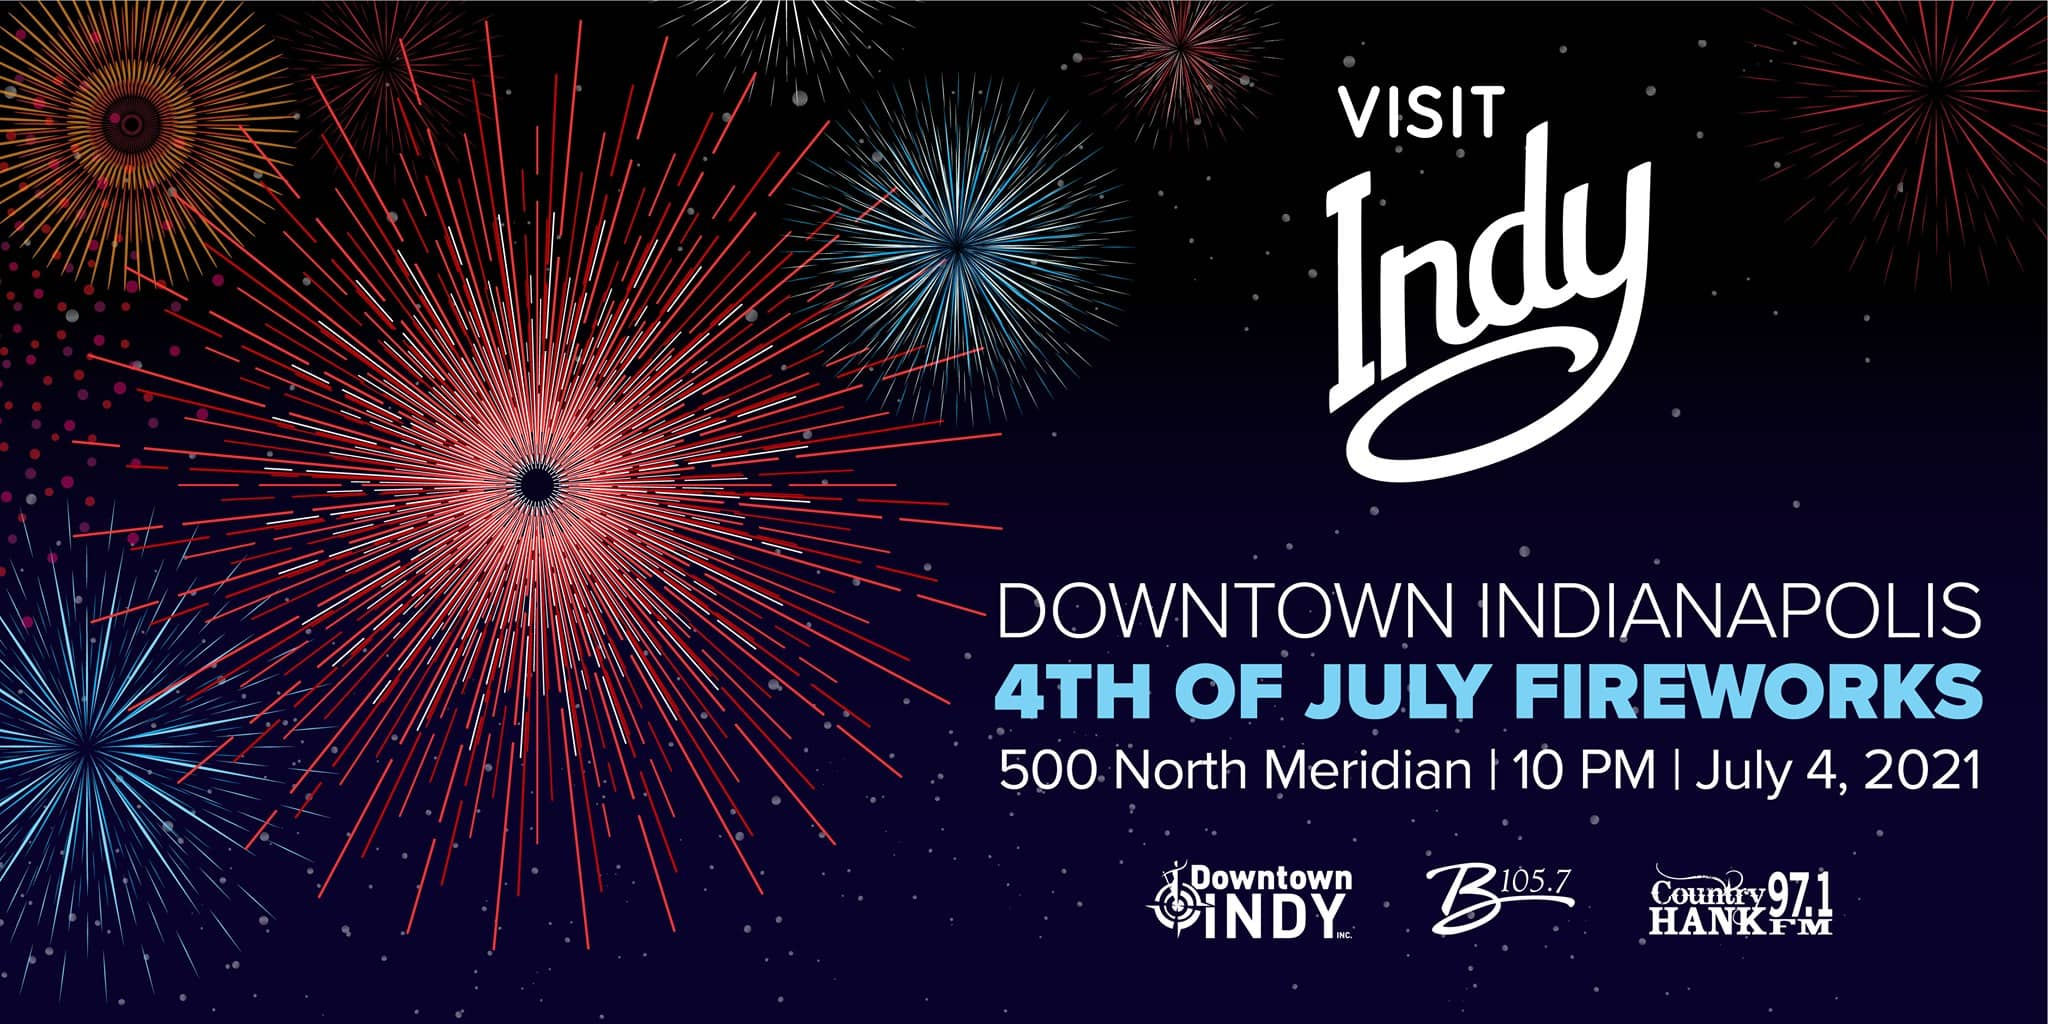 Downtown Indy's 4th of July Fireworks at 500 N. Meridian at 10 PM